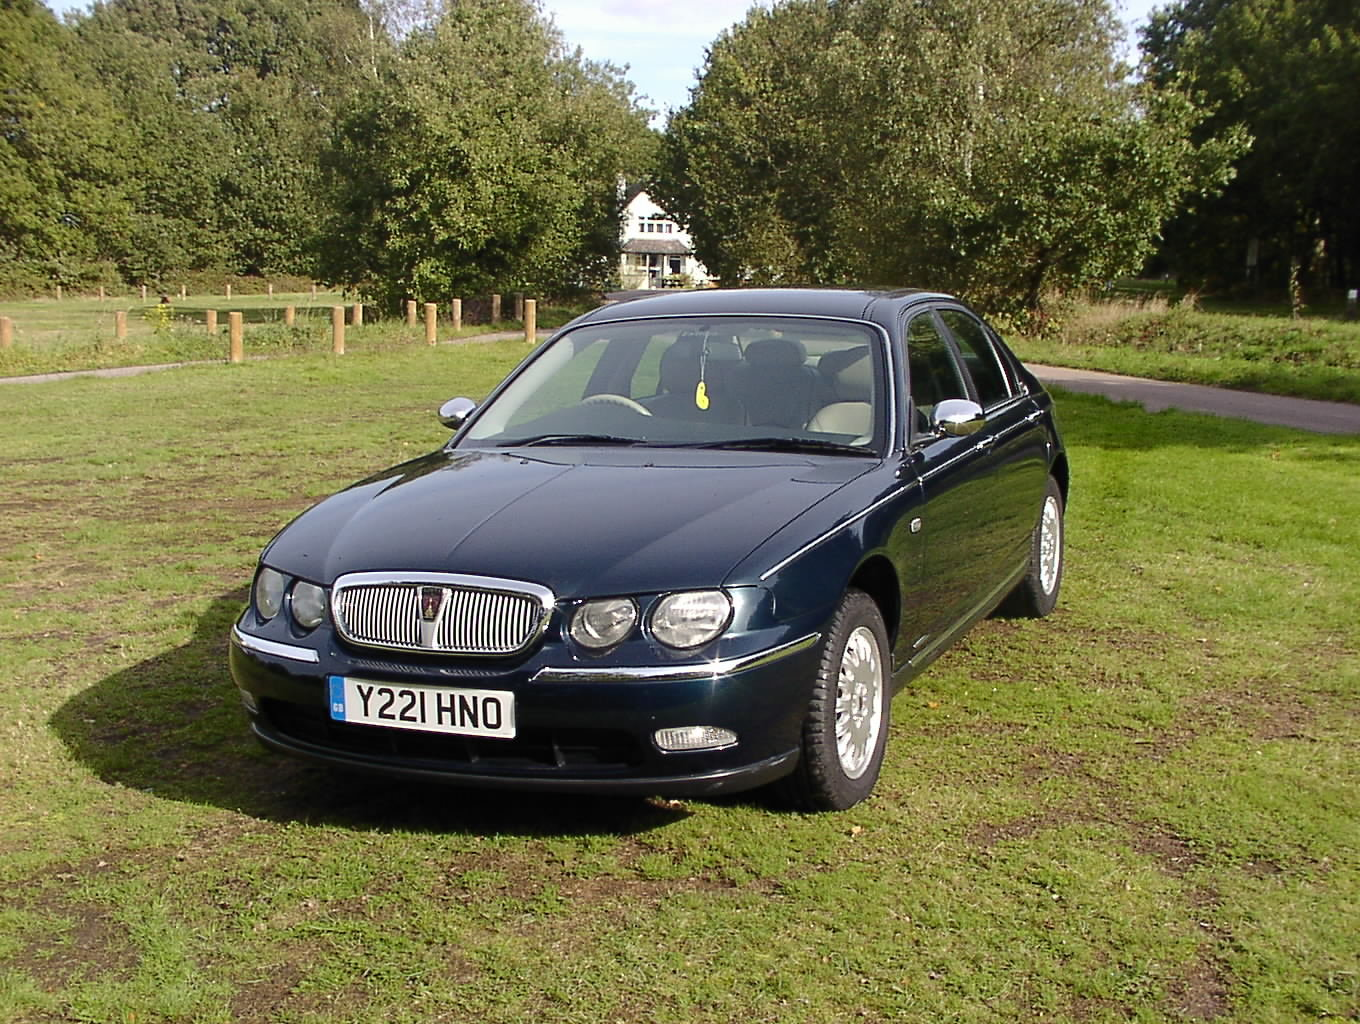 2001 Rover 75  2.5V6 Club Special Order 35000 miles fsh For Sale (picture 2 of 6)